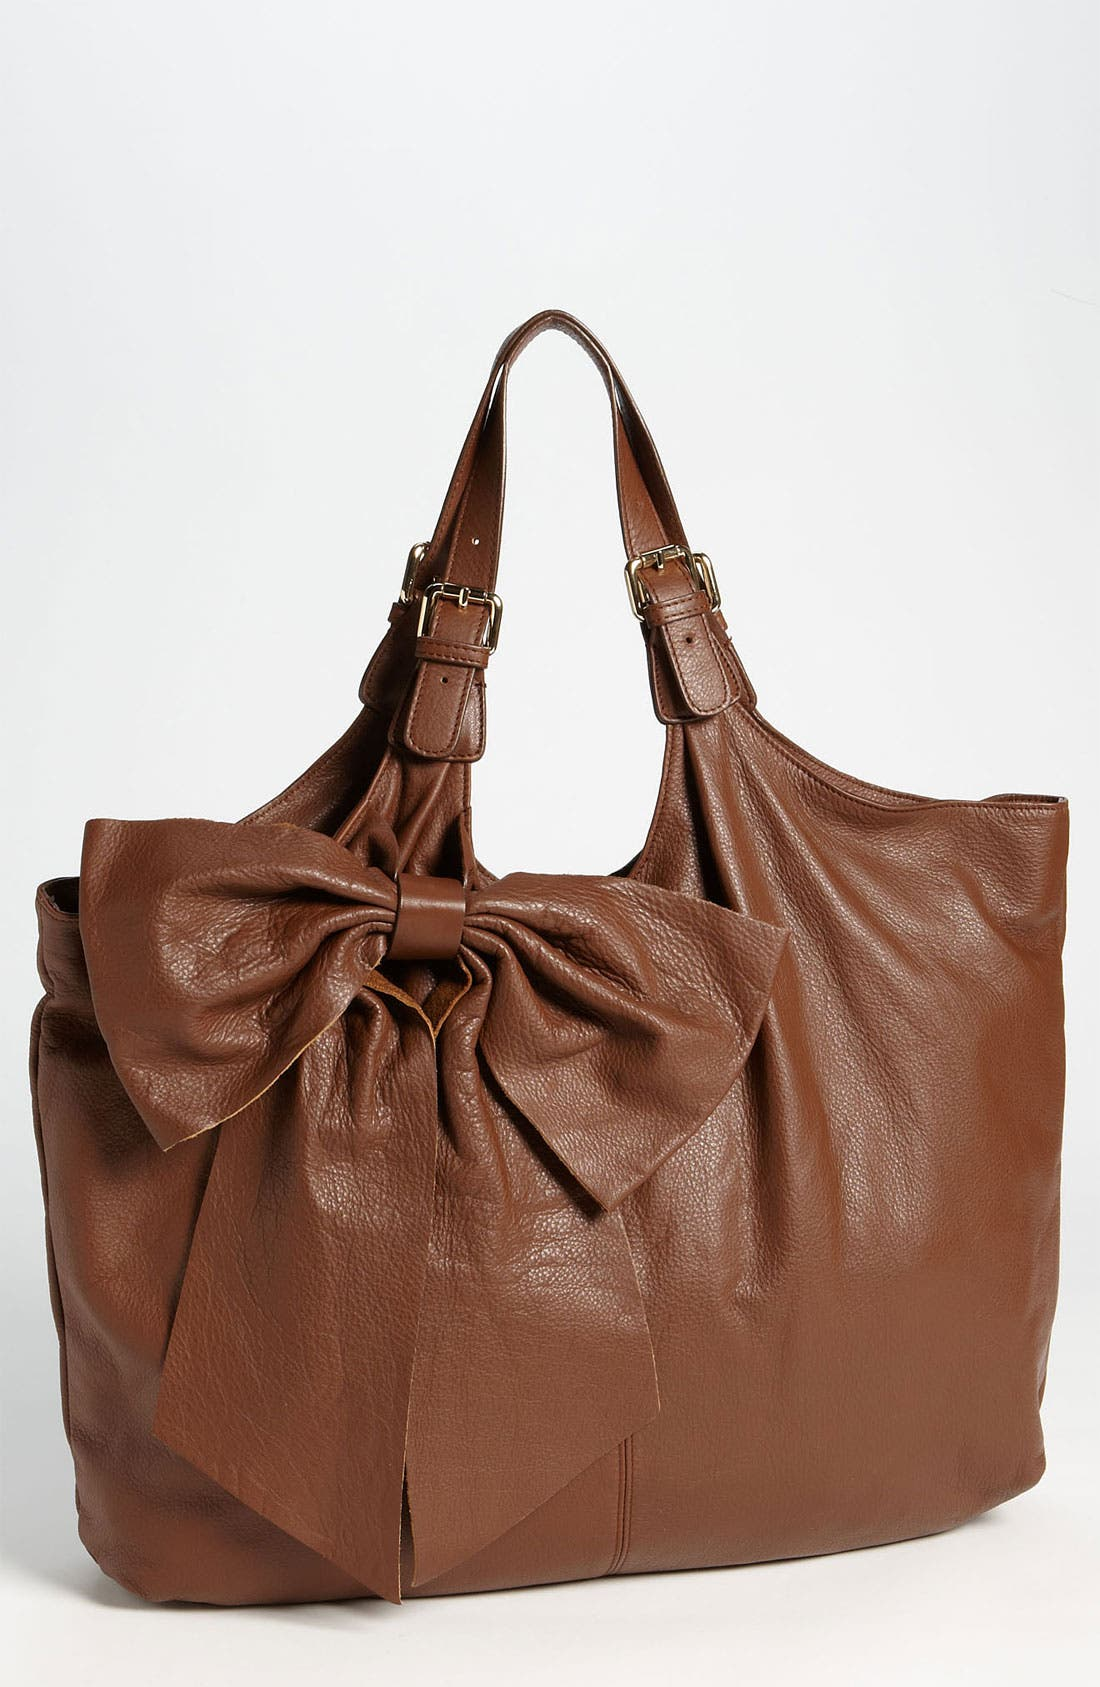 Main Image - RED Valentino 'Bow' Leather Tote